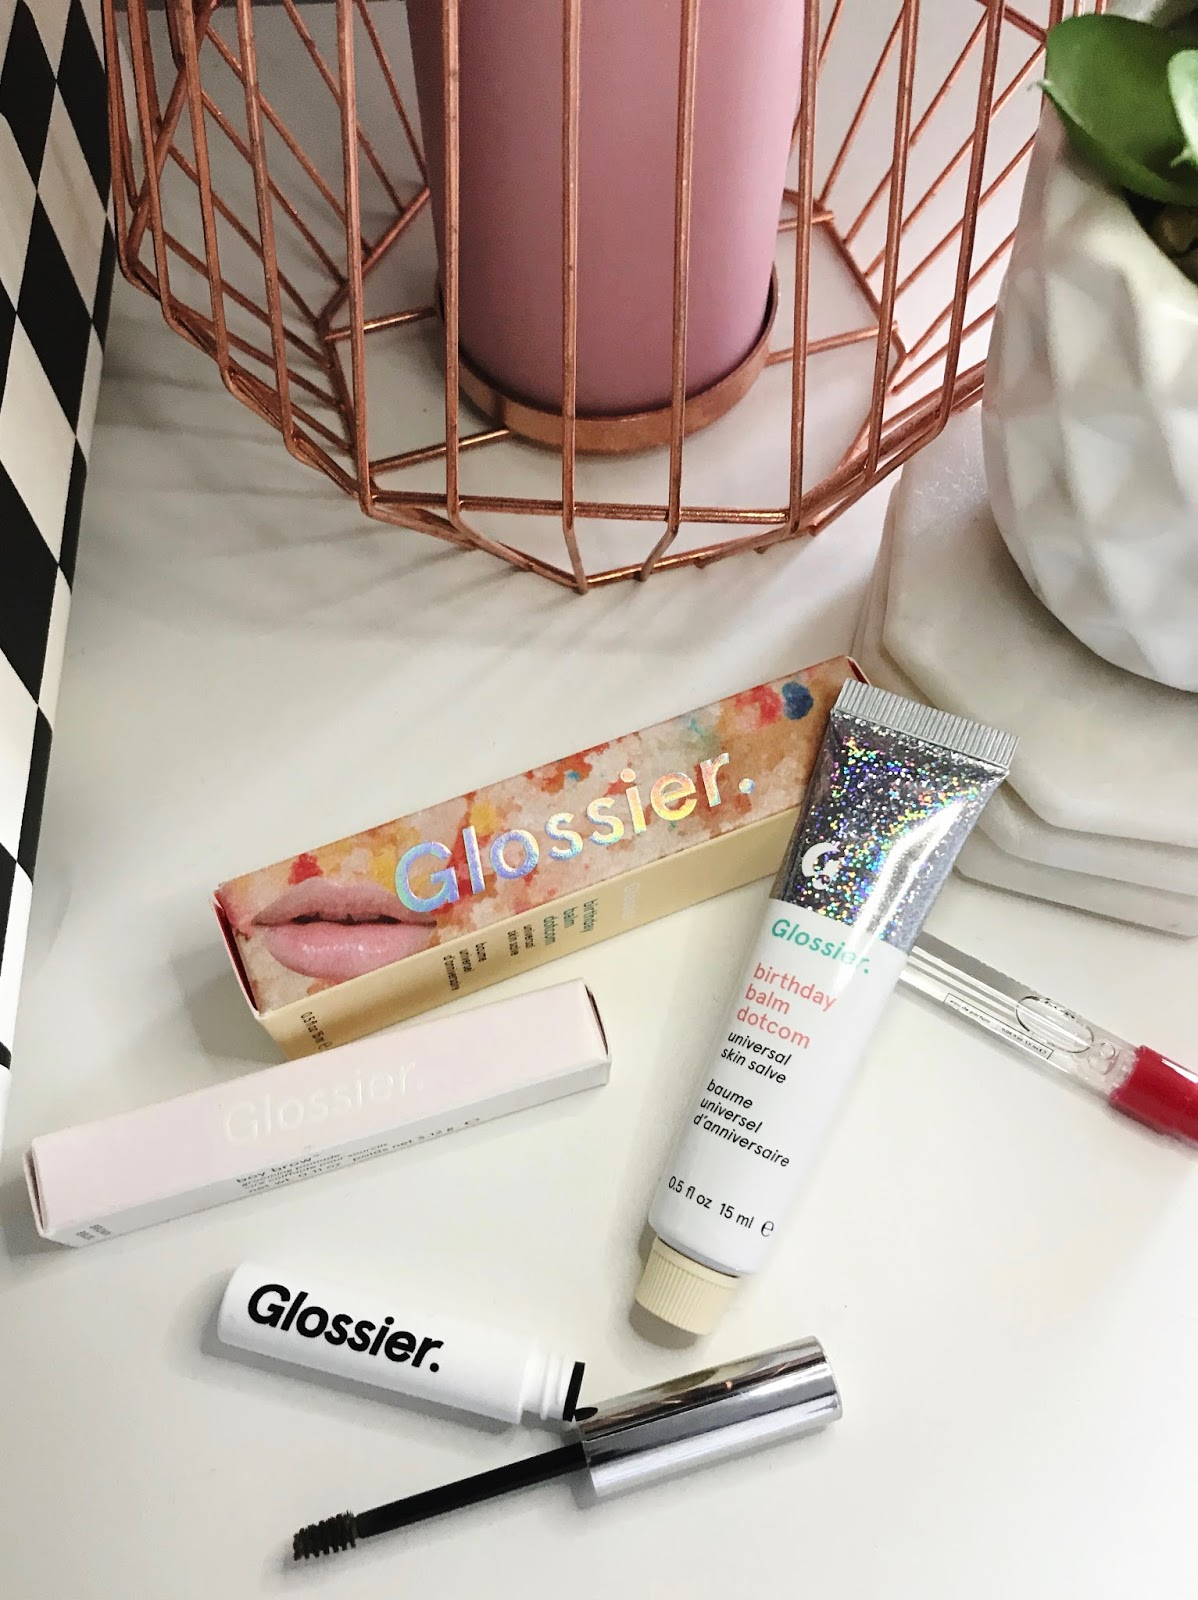 Glossier Balm Dot Com In Birthday Cake LEO WITH CANCER My Style